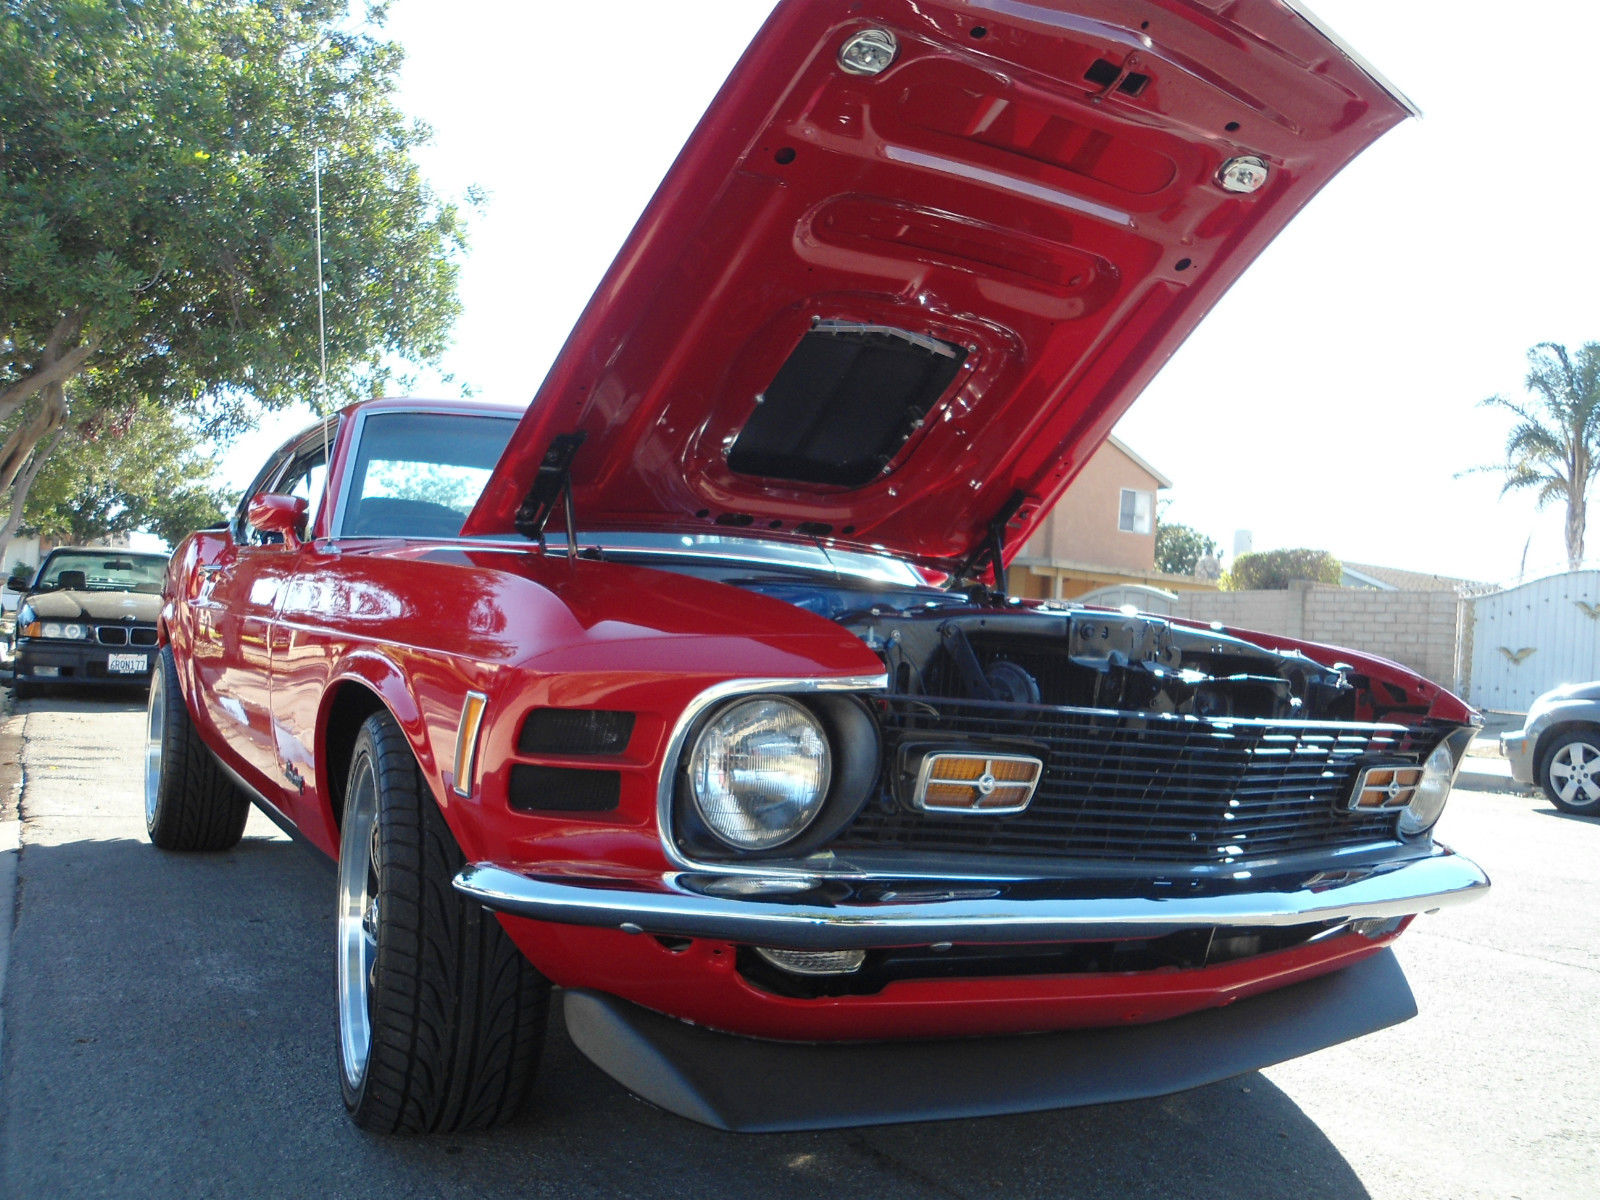 1970 Mustang Mach 1 Red Black Body Built Brand New Everything Like Ford A